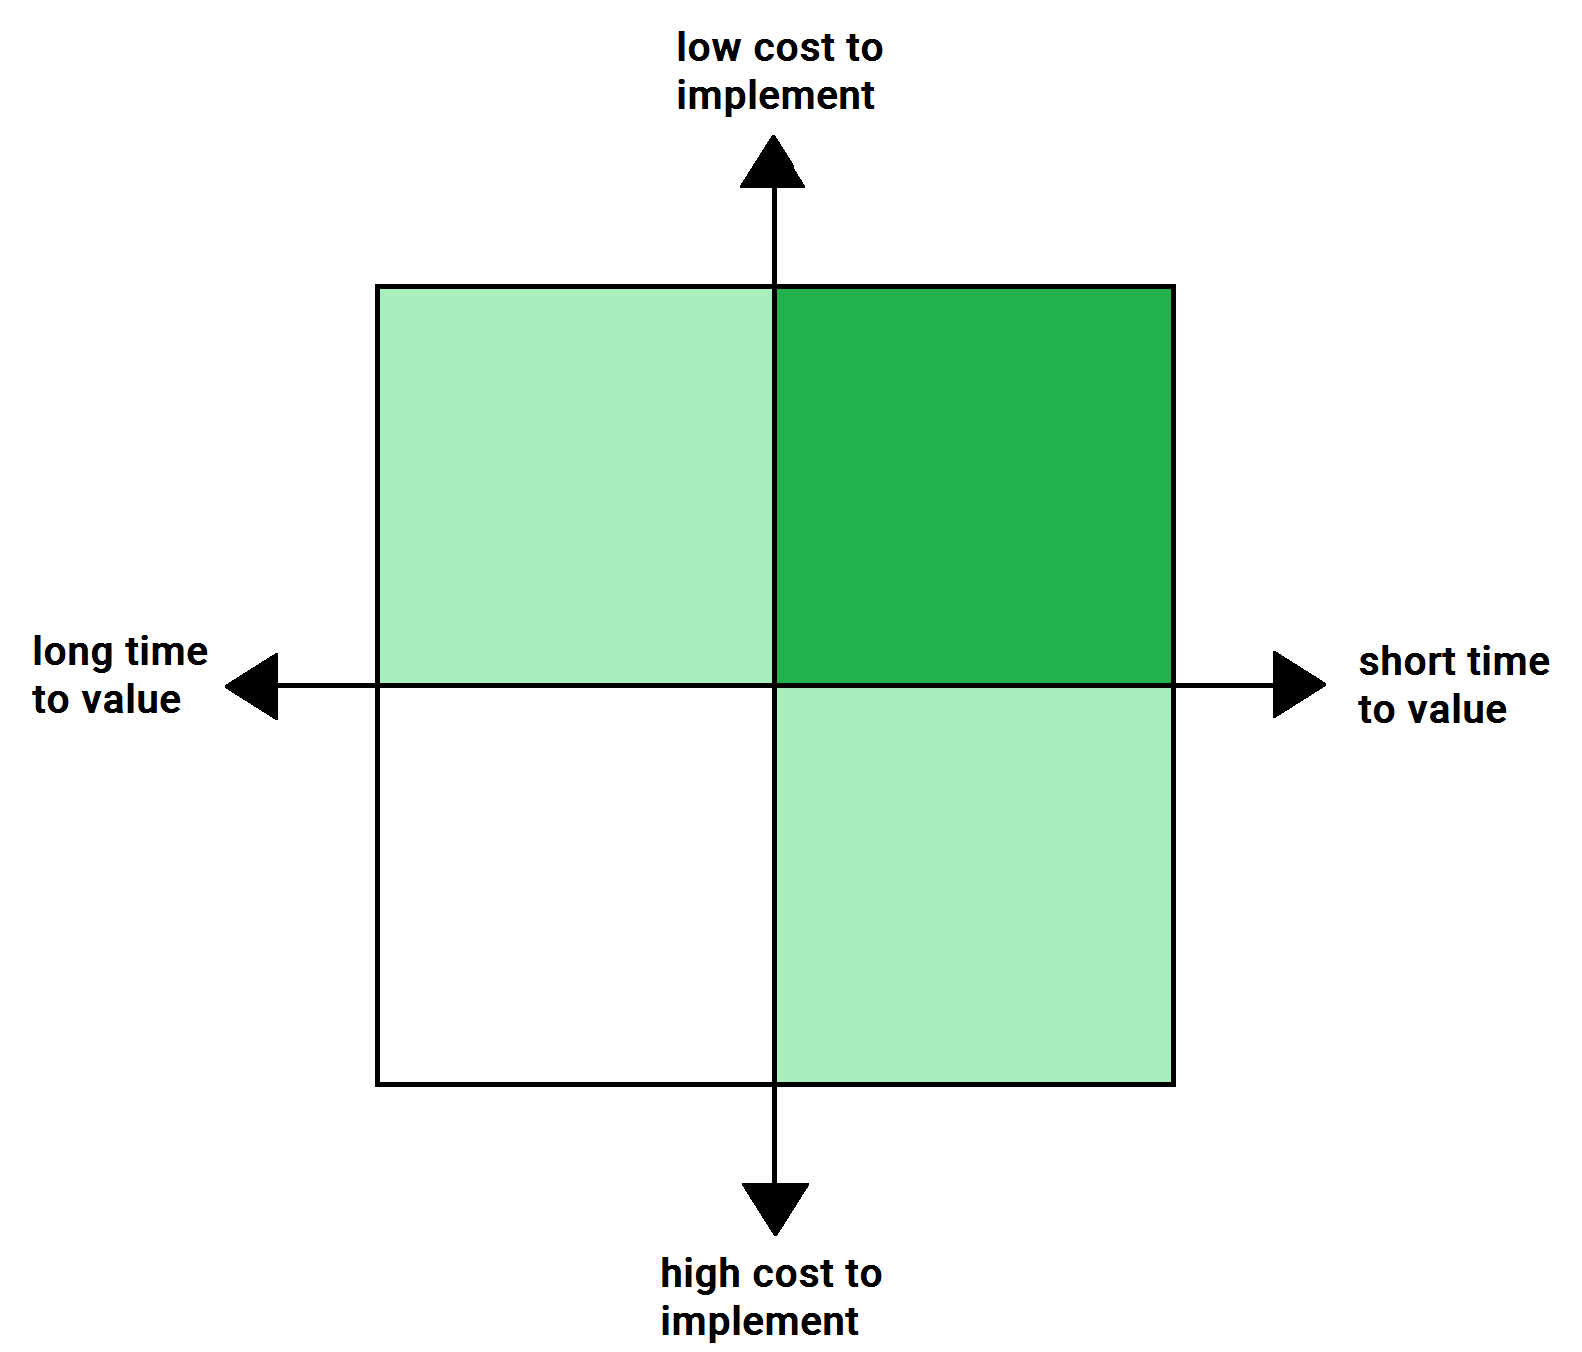 chart comparing time-to-value and cost-to-implement.